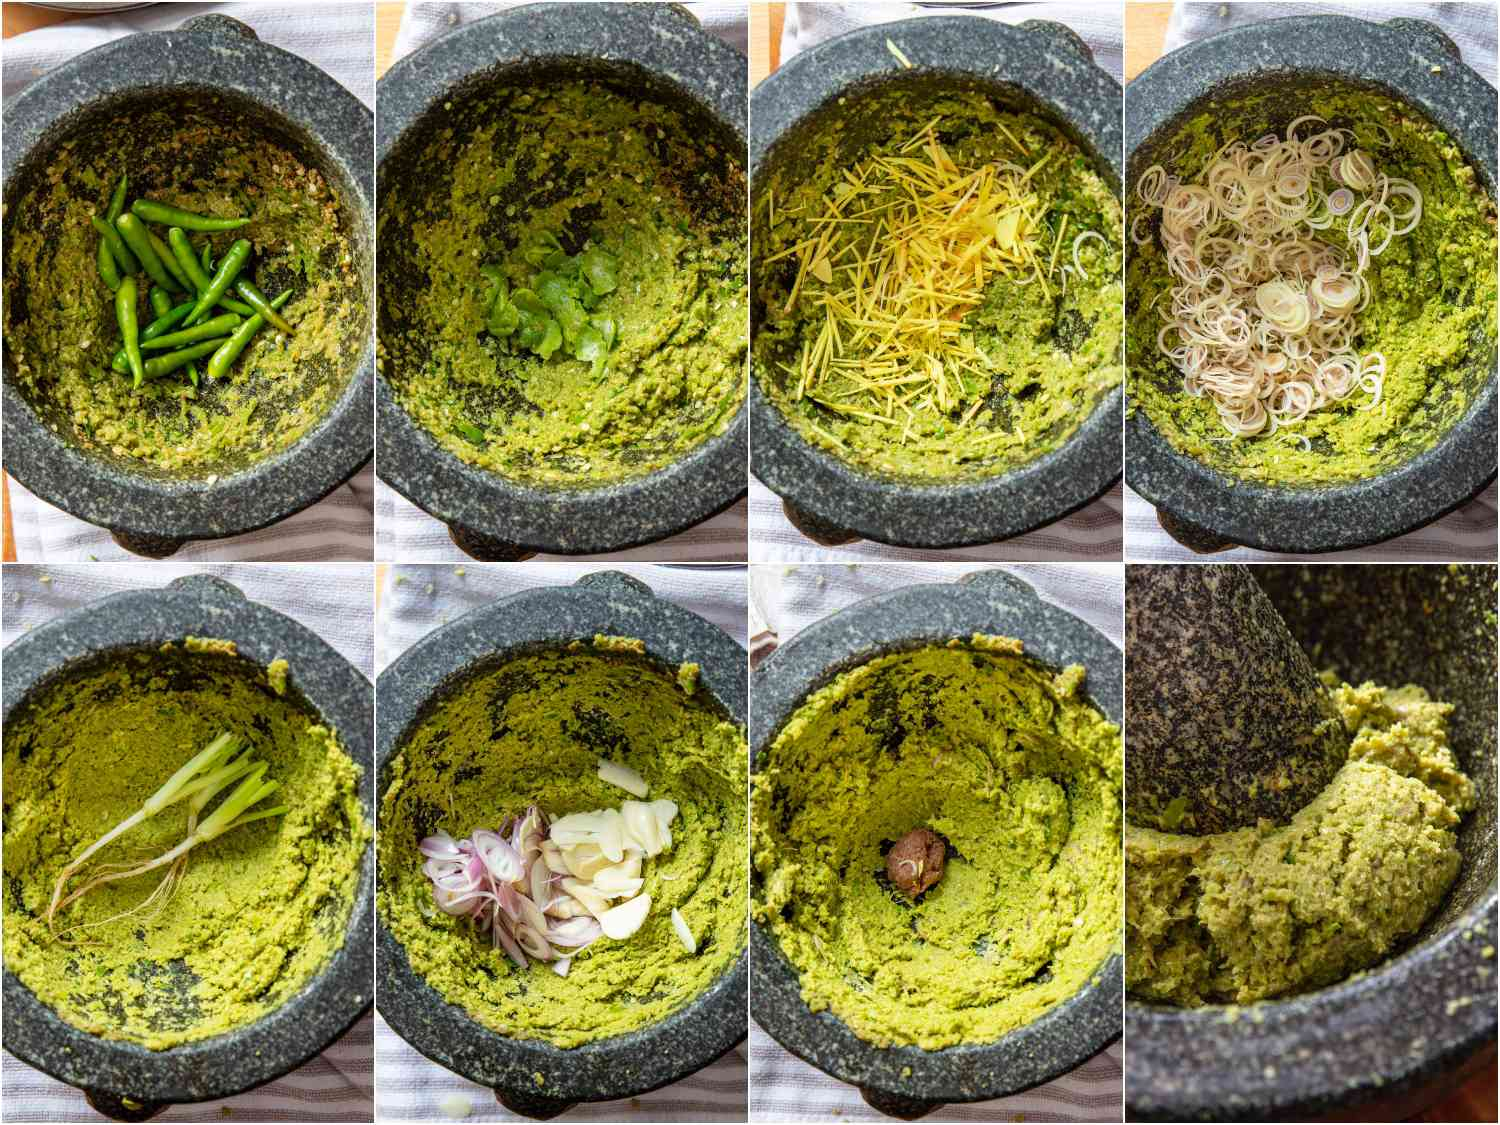 the process of green curry paste being made in a mortar and pestle, each ingredient being added one at a time and pounded thoroughly